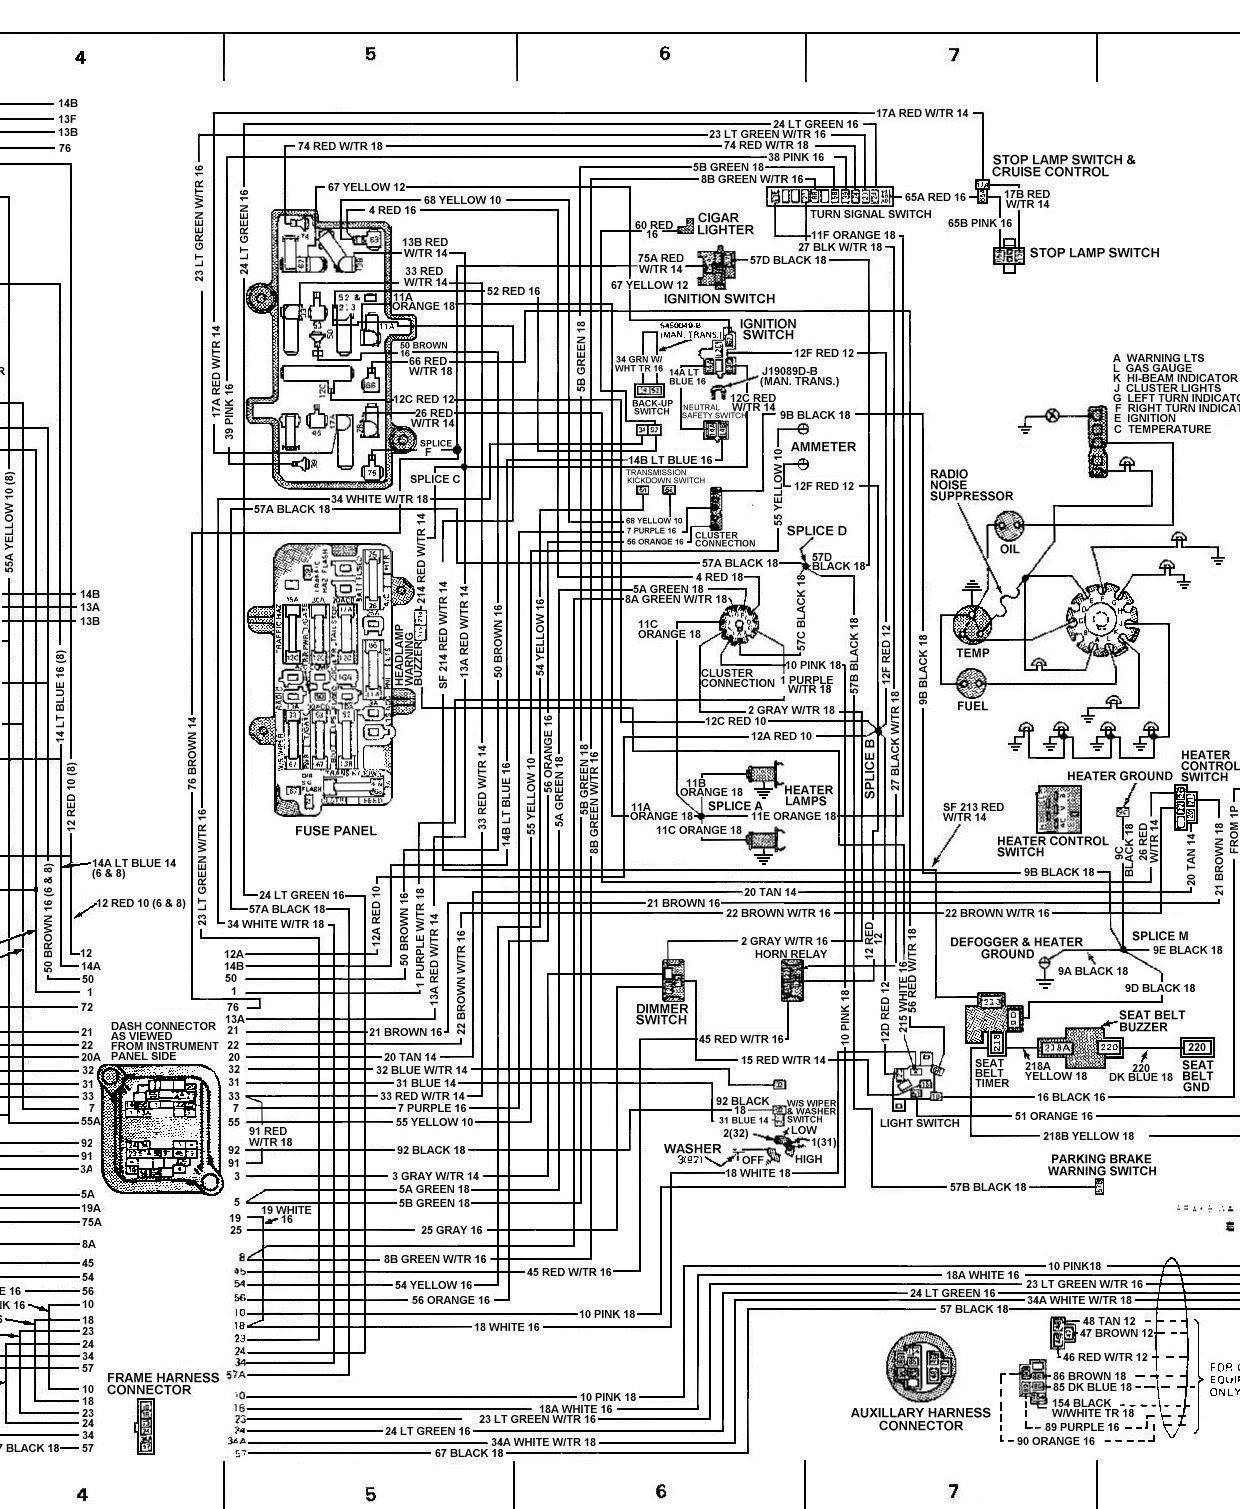 1976 corvette dash wiring diagram doorbell wire chevy diagrams / schematics | avalanche 2004 1500 pinterest honda accord, sedans and ...